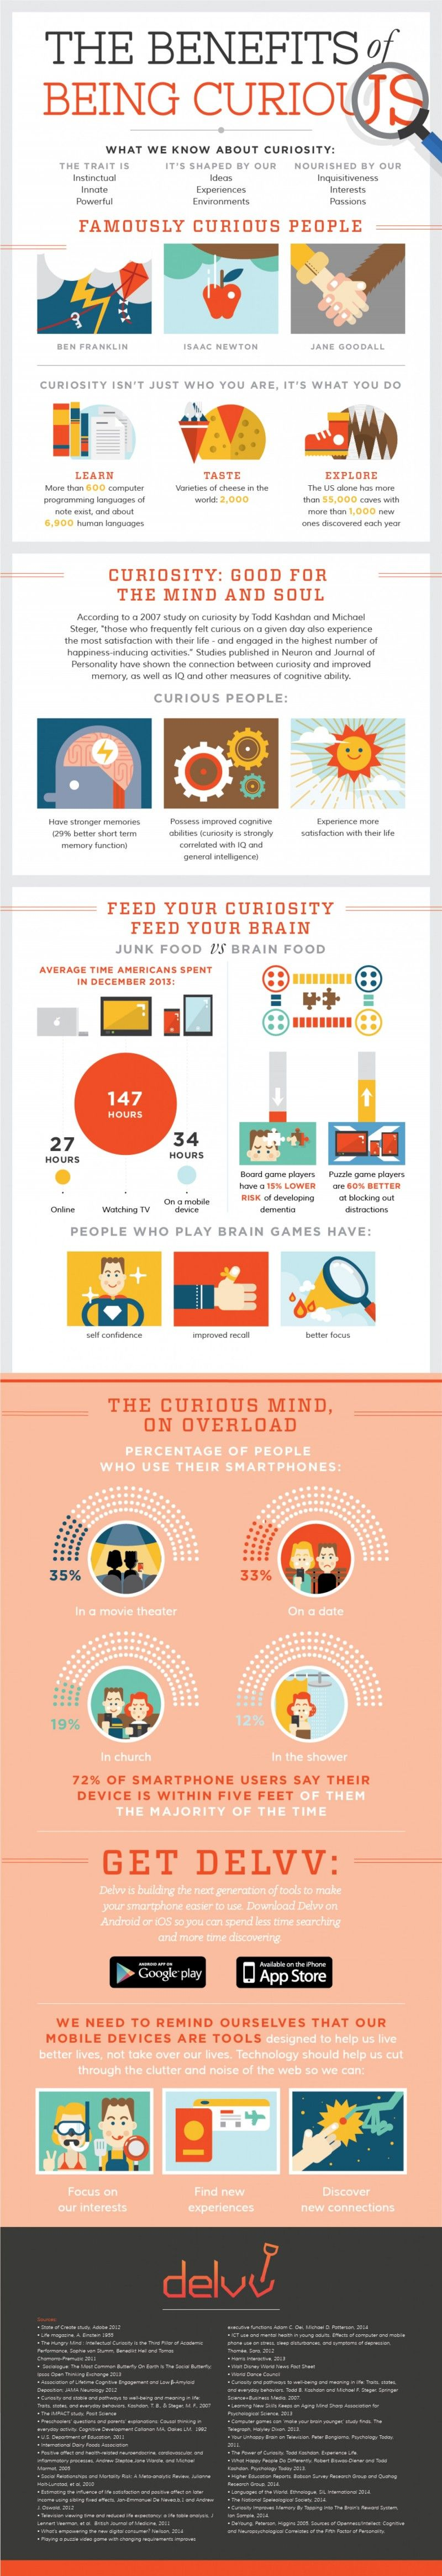 The Benefits of Being Curious #infographic